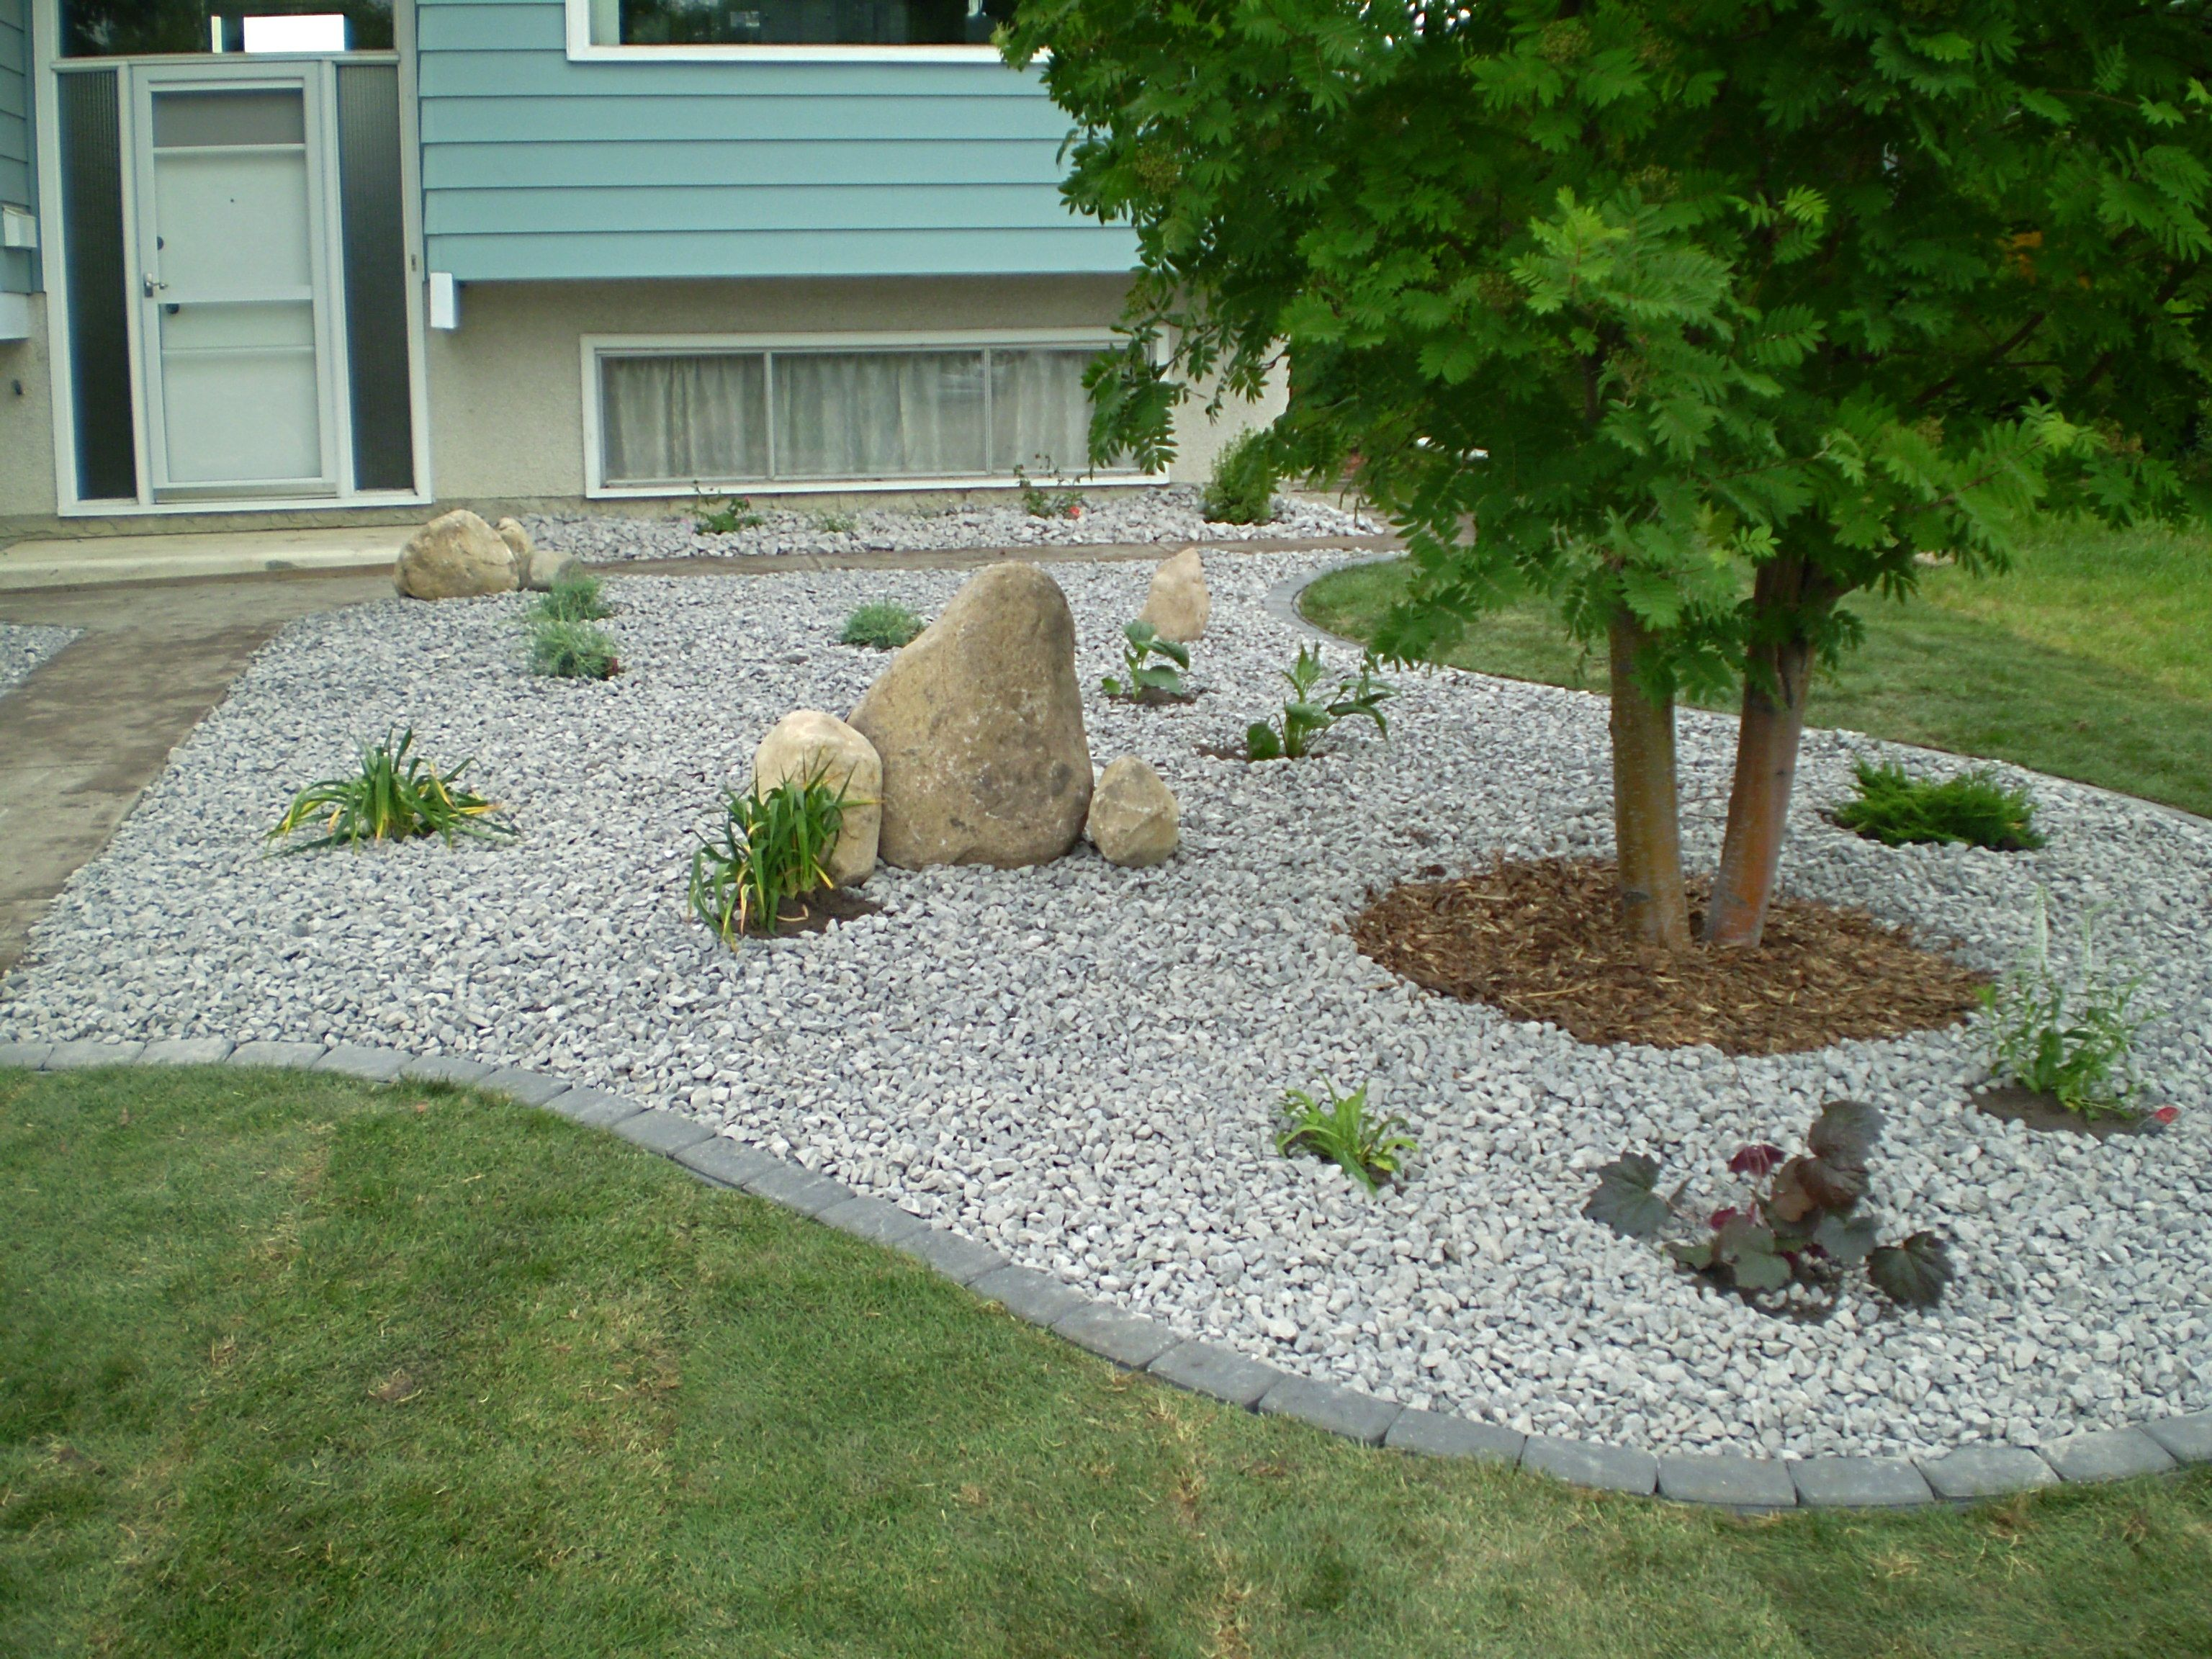 landscaping with rocks and stones whitemud garden centre and landscaping edmonton nursery landscape - Rock Home Gardens